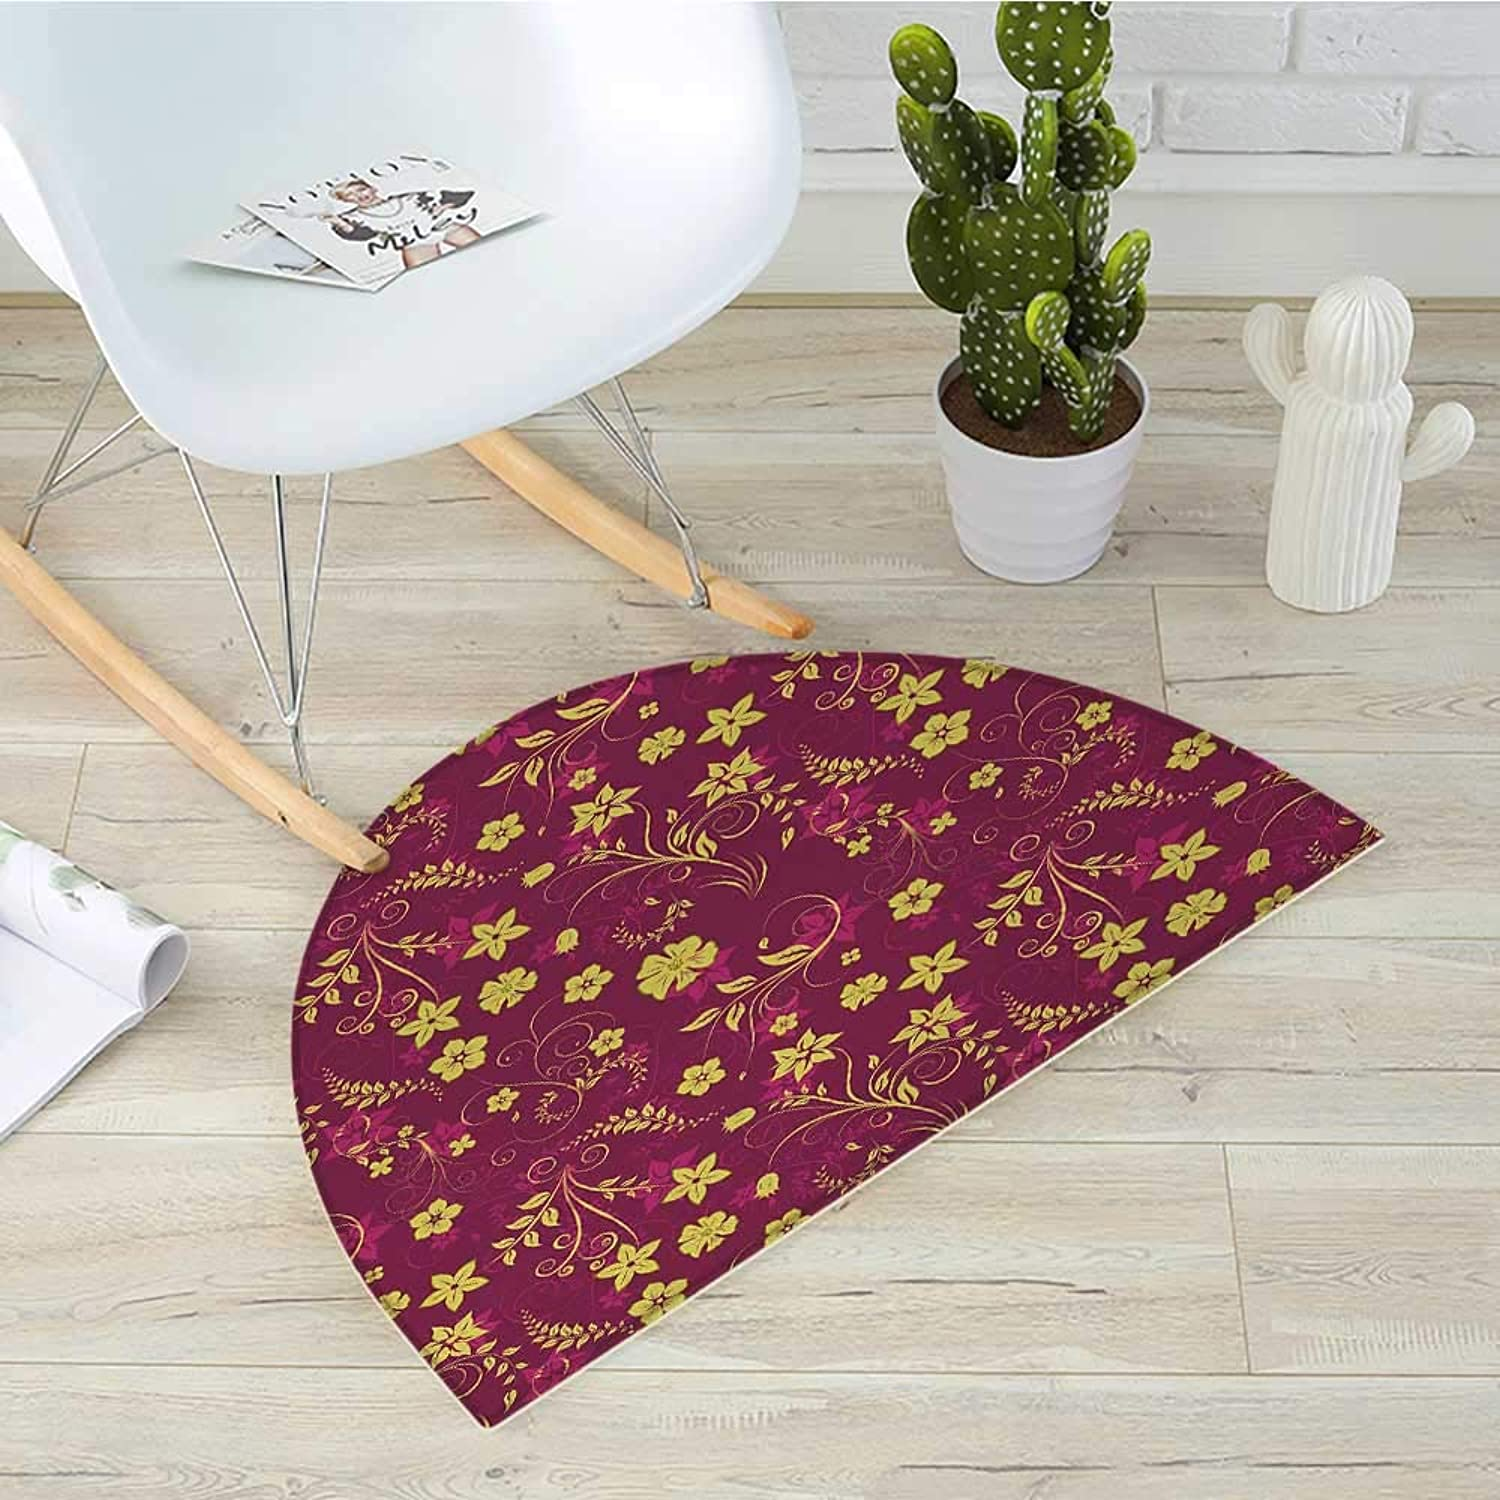 Floral Half Round Door mats Abstract Ornamental Spring Flowers Pattern Artistic Illustration Bathroom Mat H 31.5  xD 47.2  Claret Red and Light Green